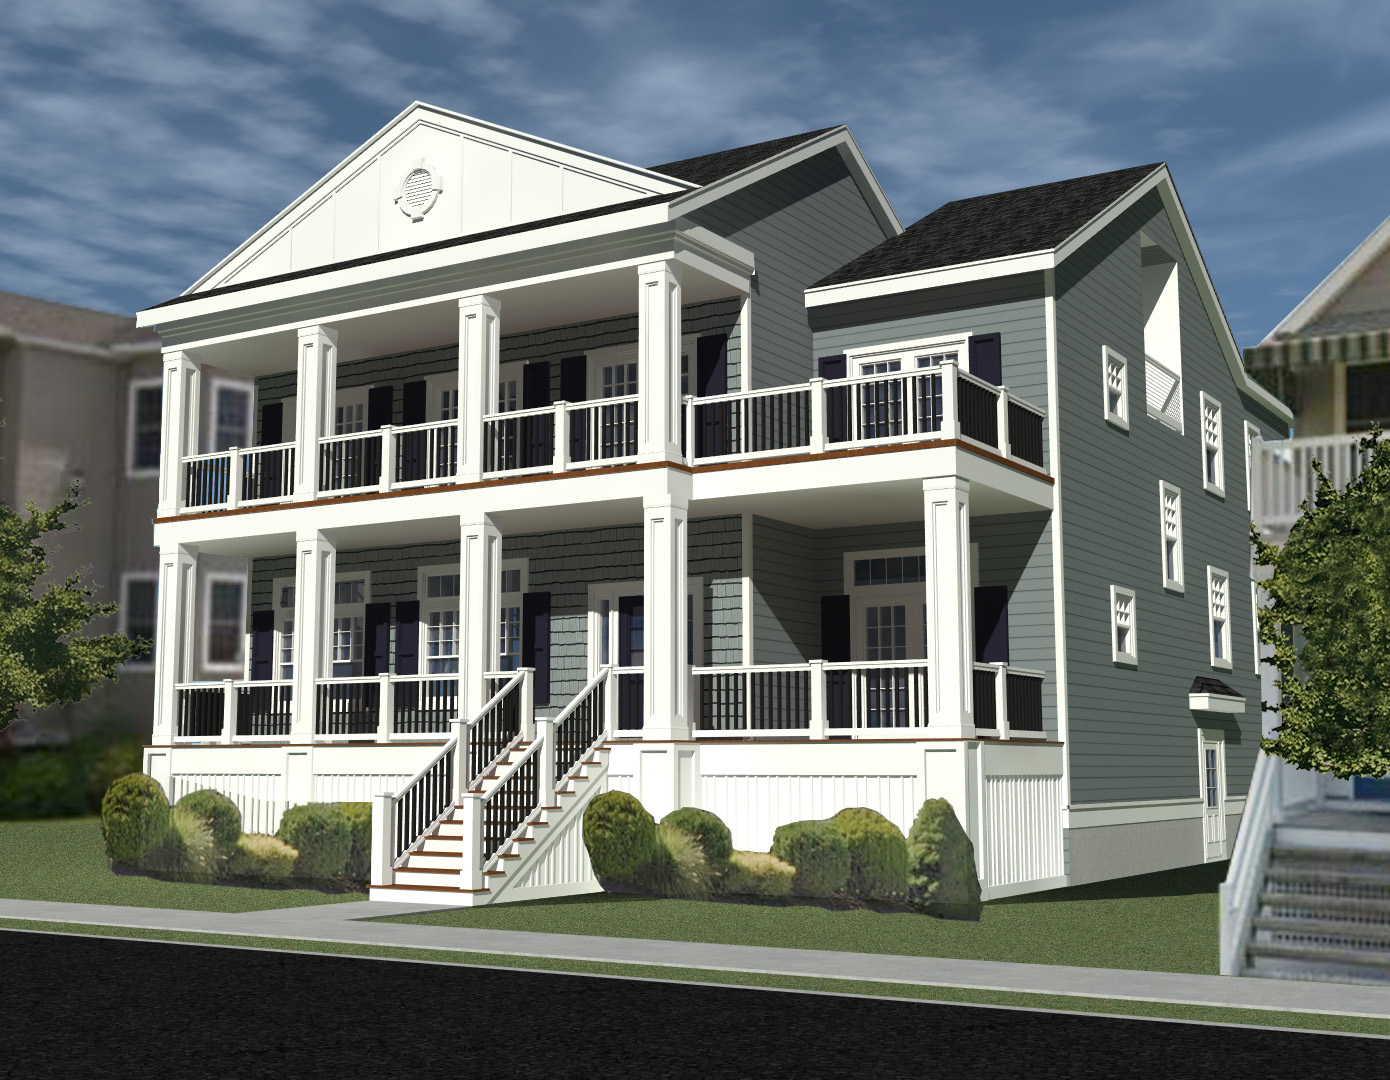 2121 Simpson Avenue Model Front Side.jpg